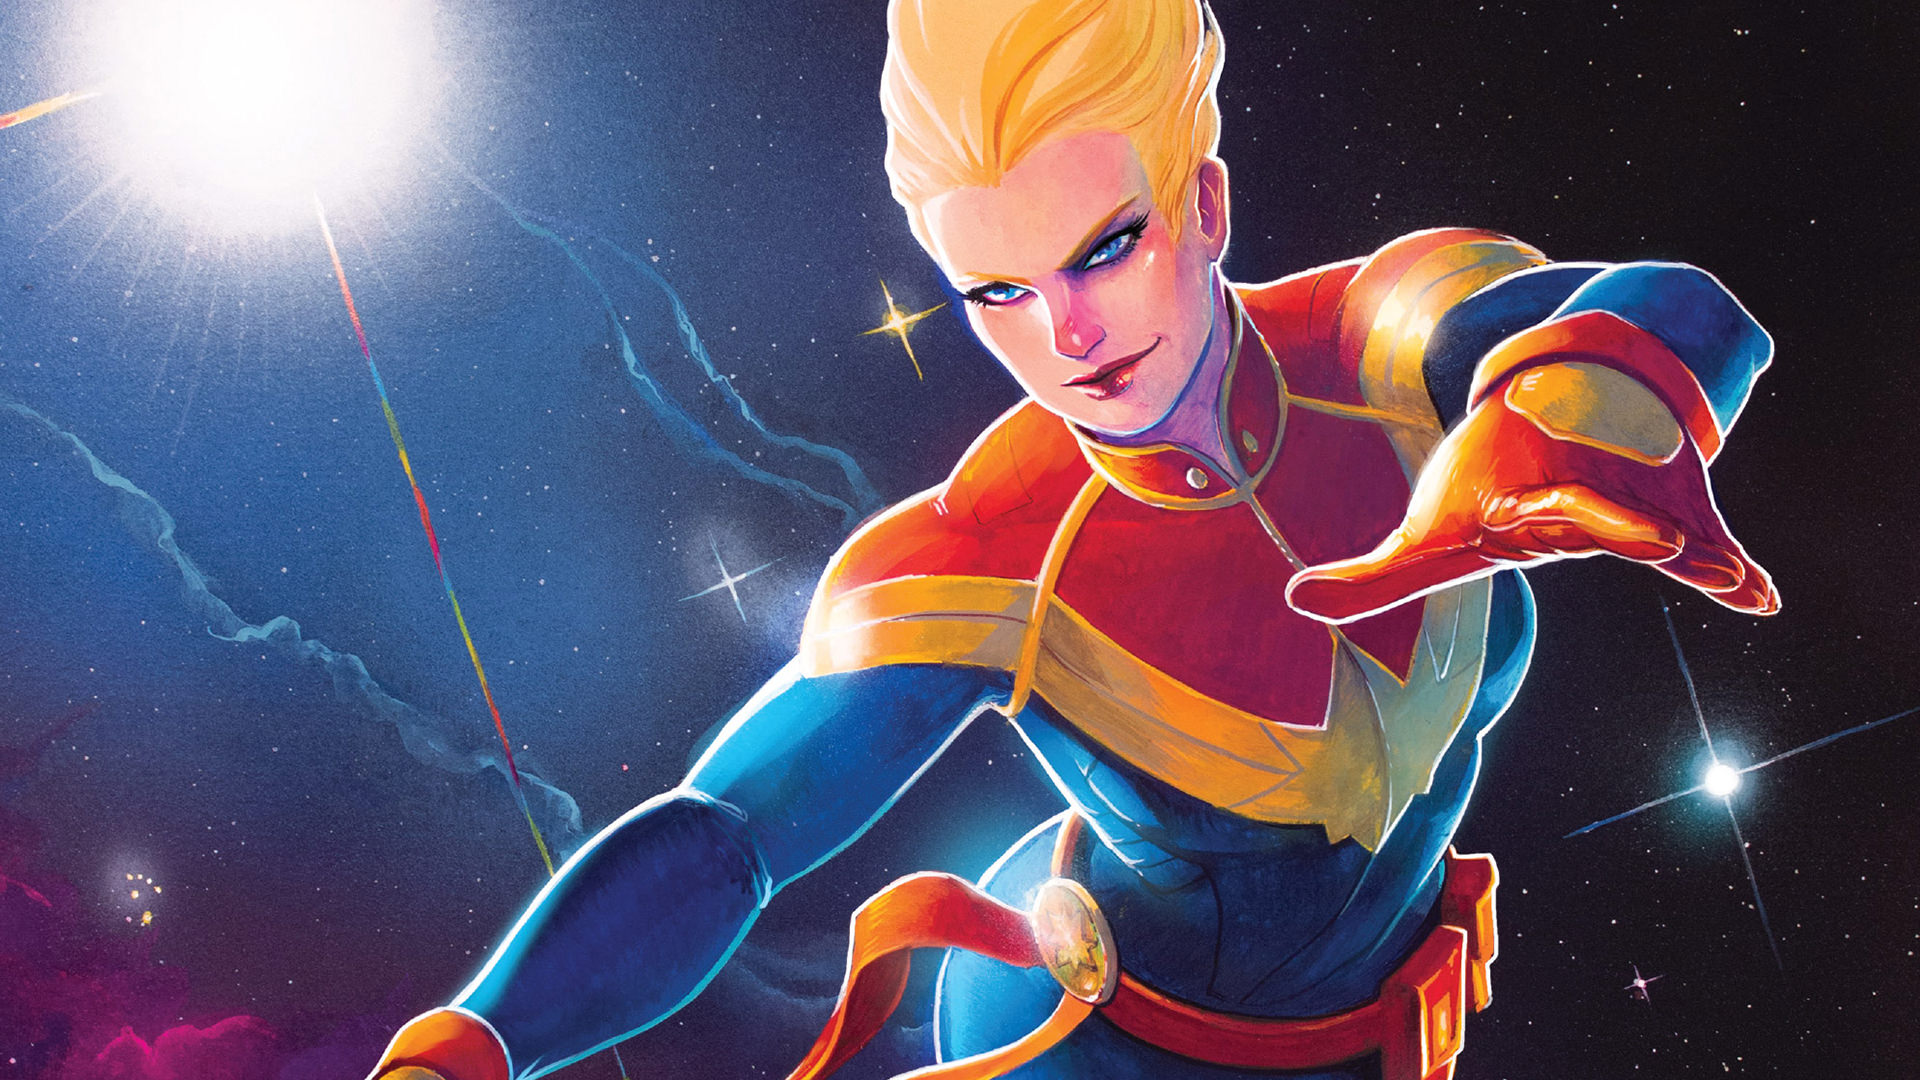 Captain Marvel In Space.jpg